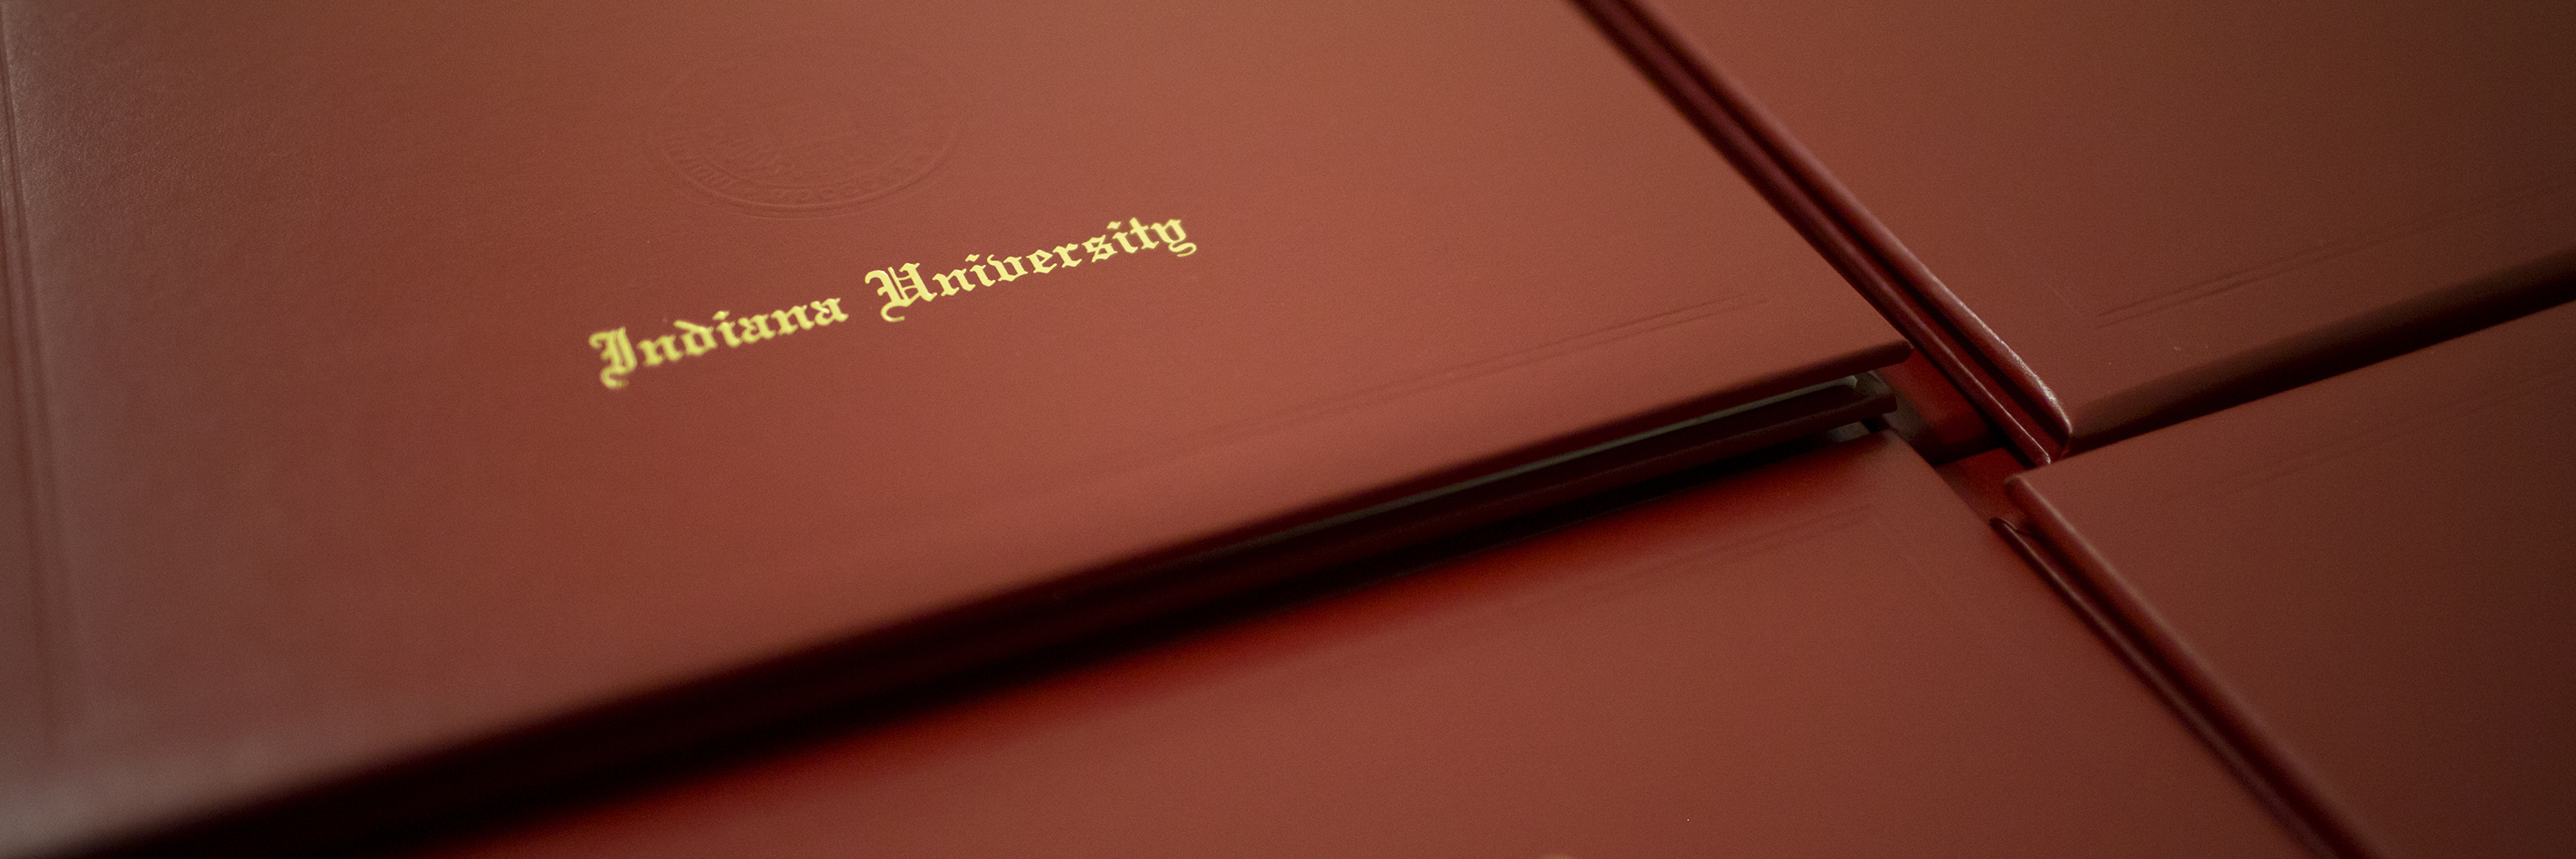 Close-up of Indiana University diploma covers.